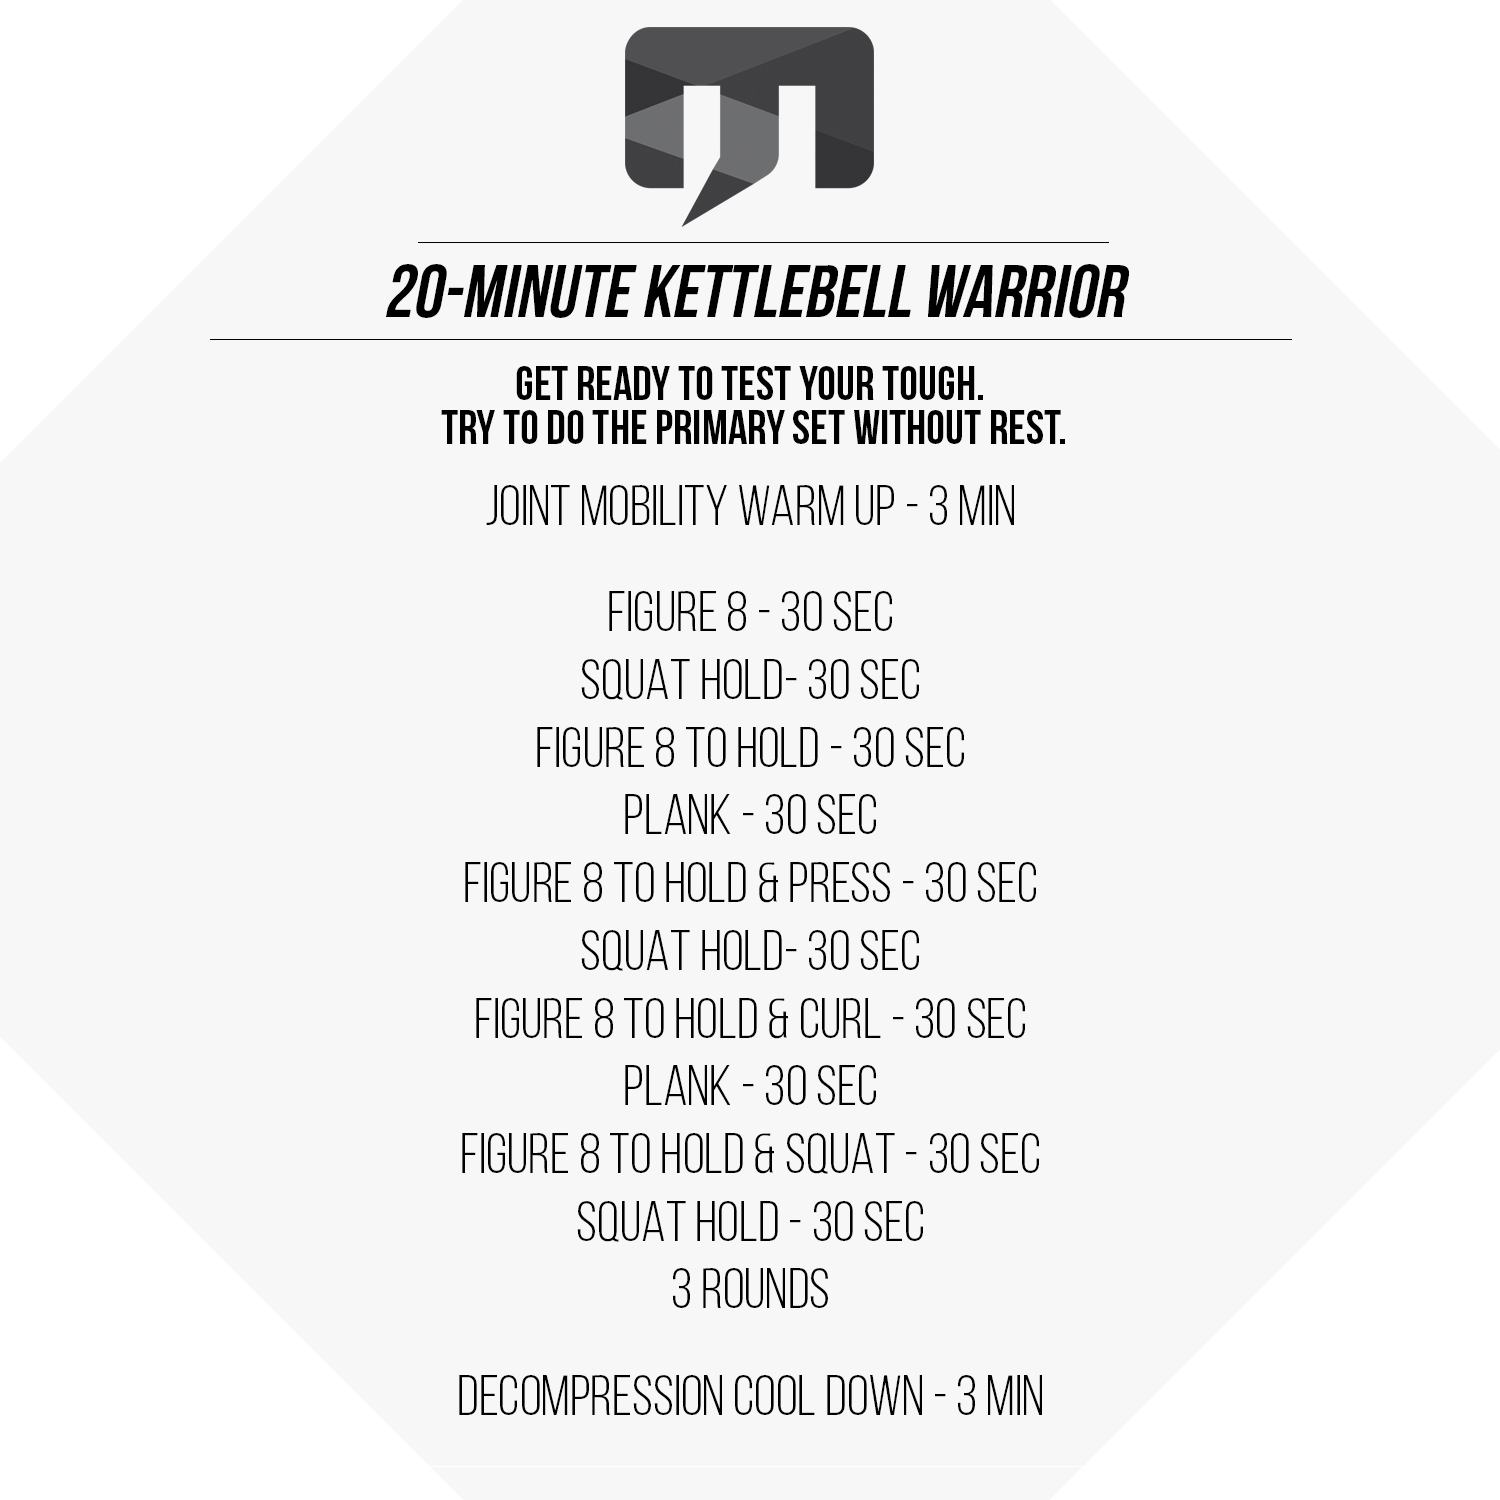 20 Minute Kettlebell Warrior Workout